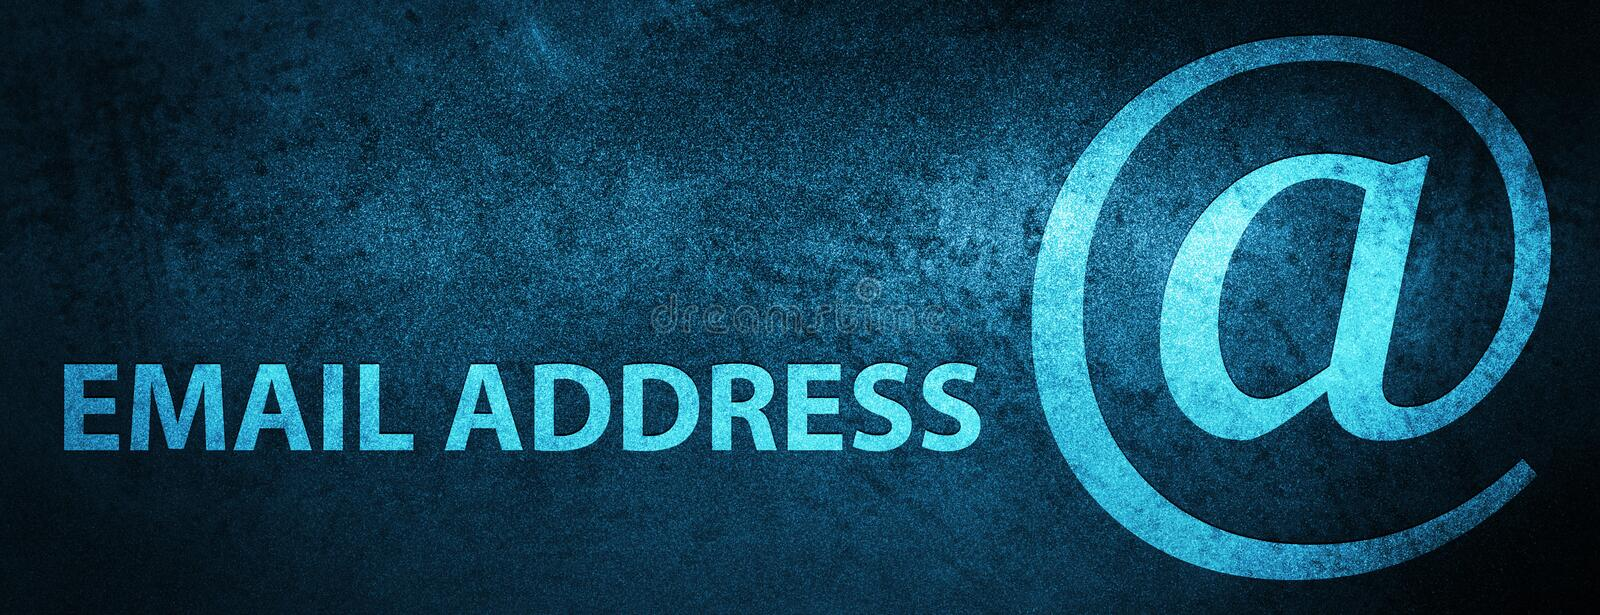 Email address special blue banner background royalty free illustration